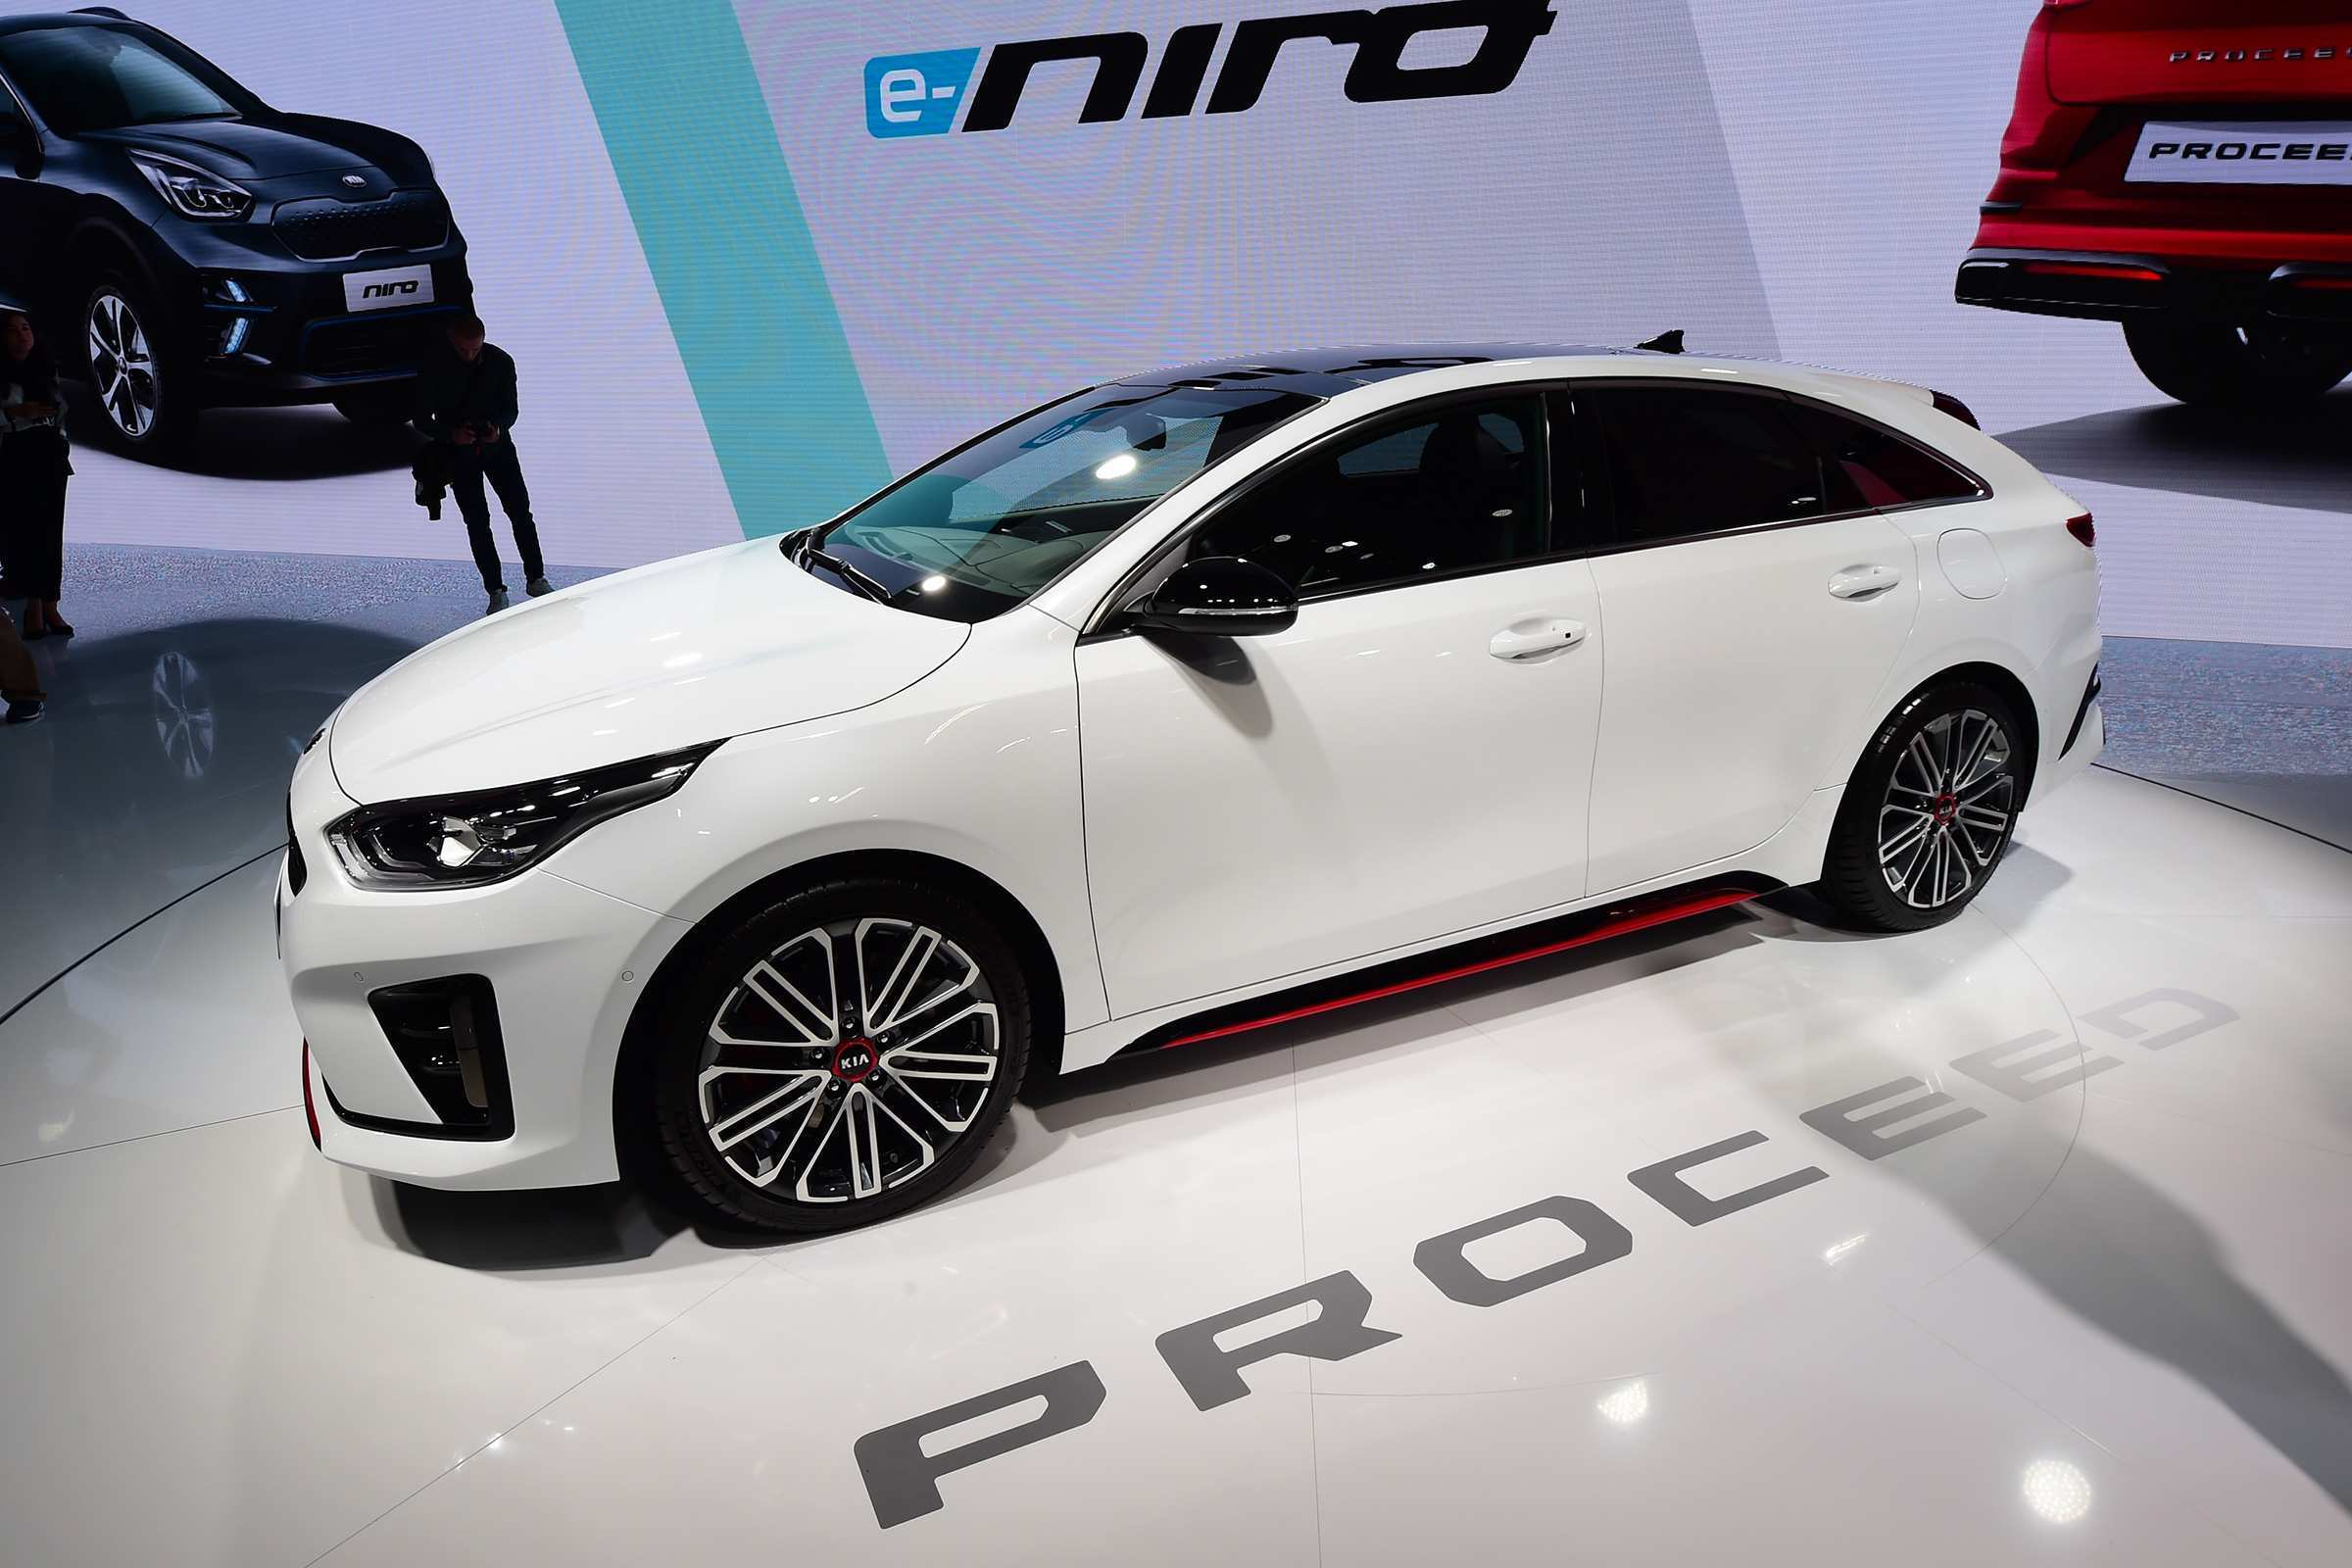 12 Concept of Proceed Kia 2019 New Review by Proceed Kia 2019